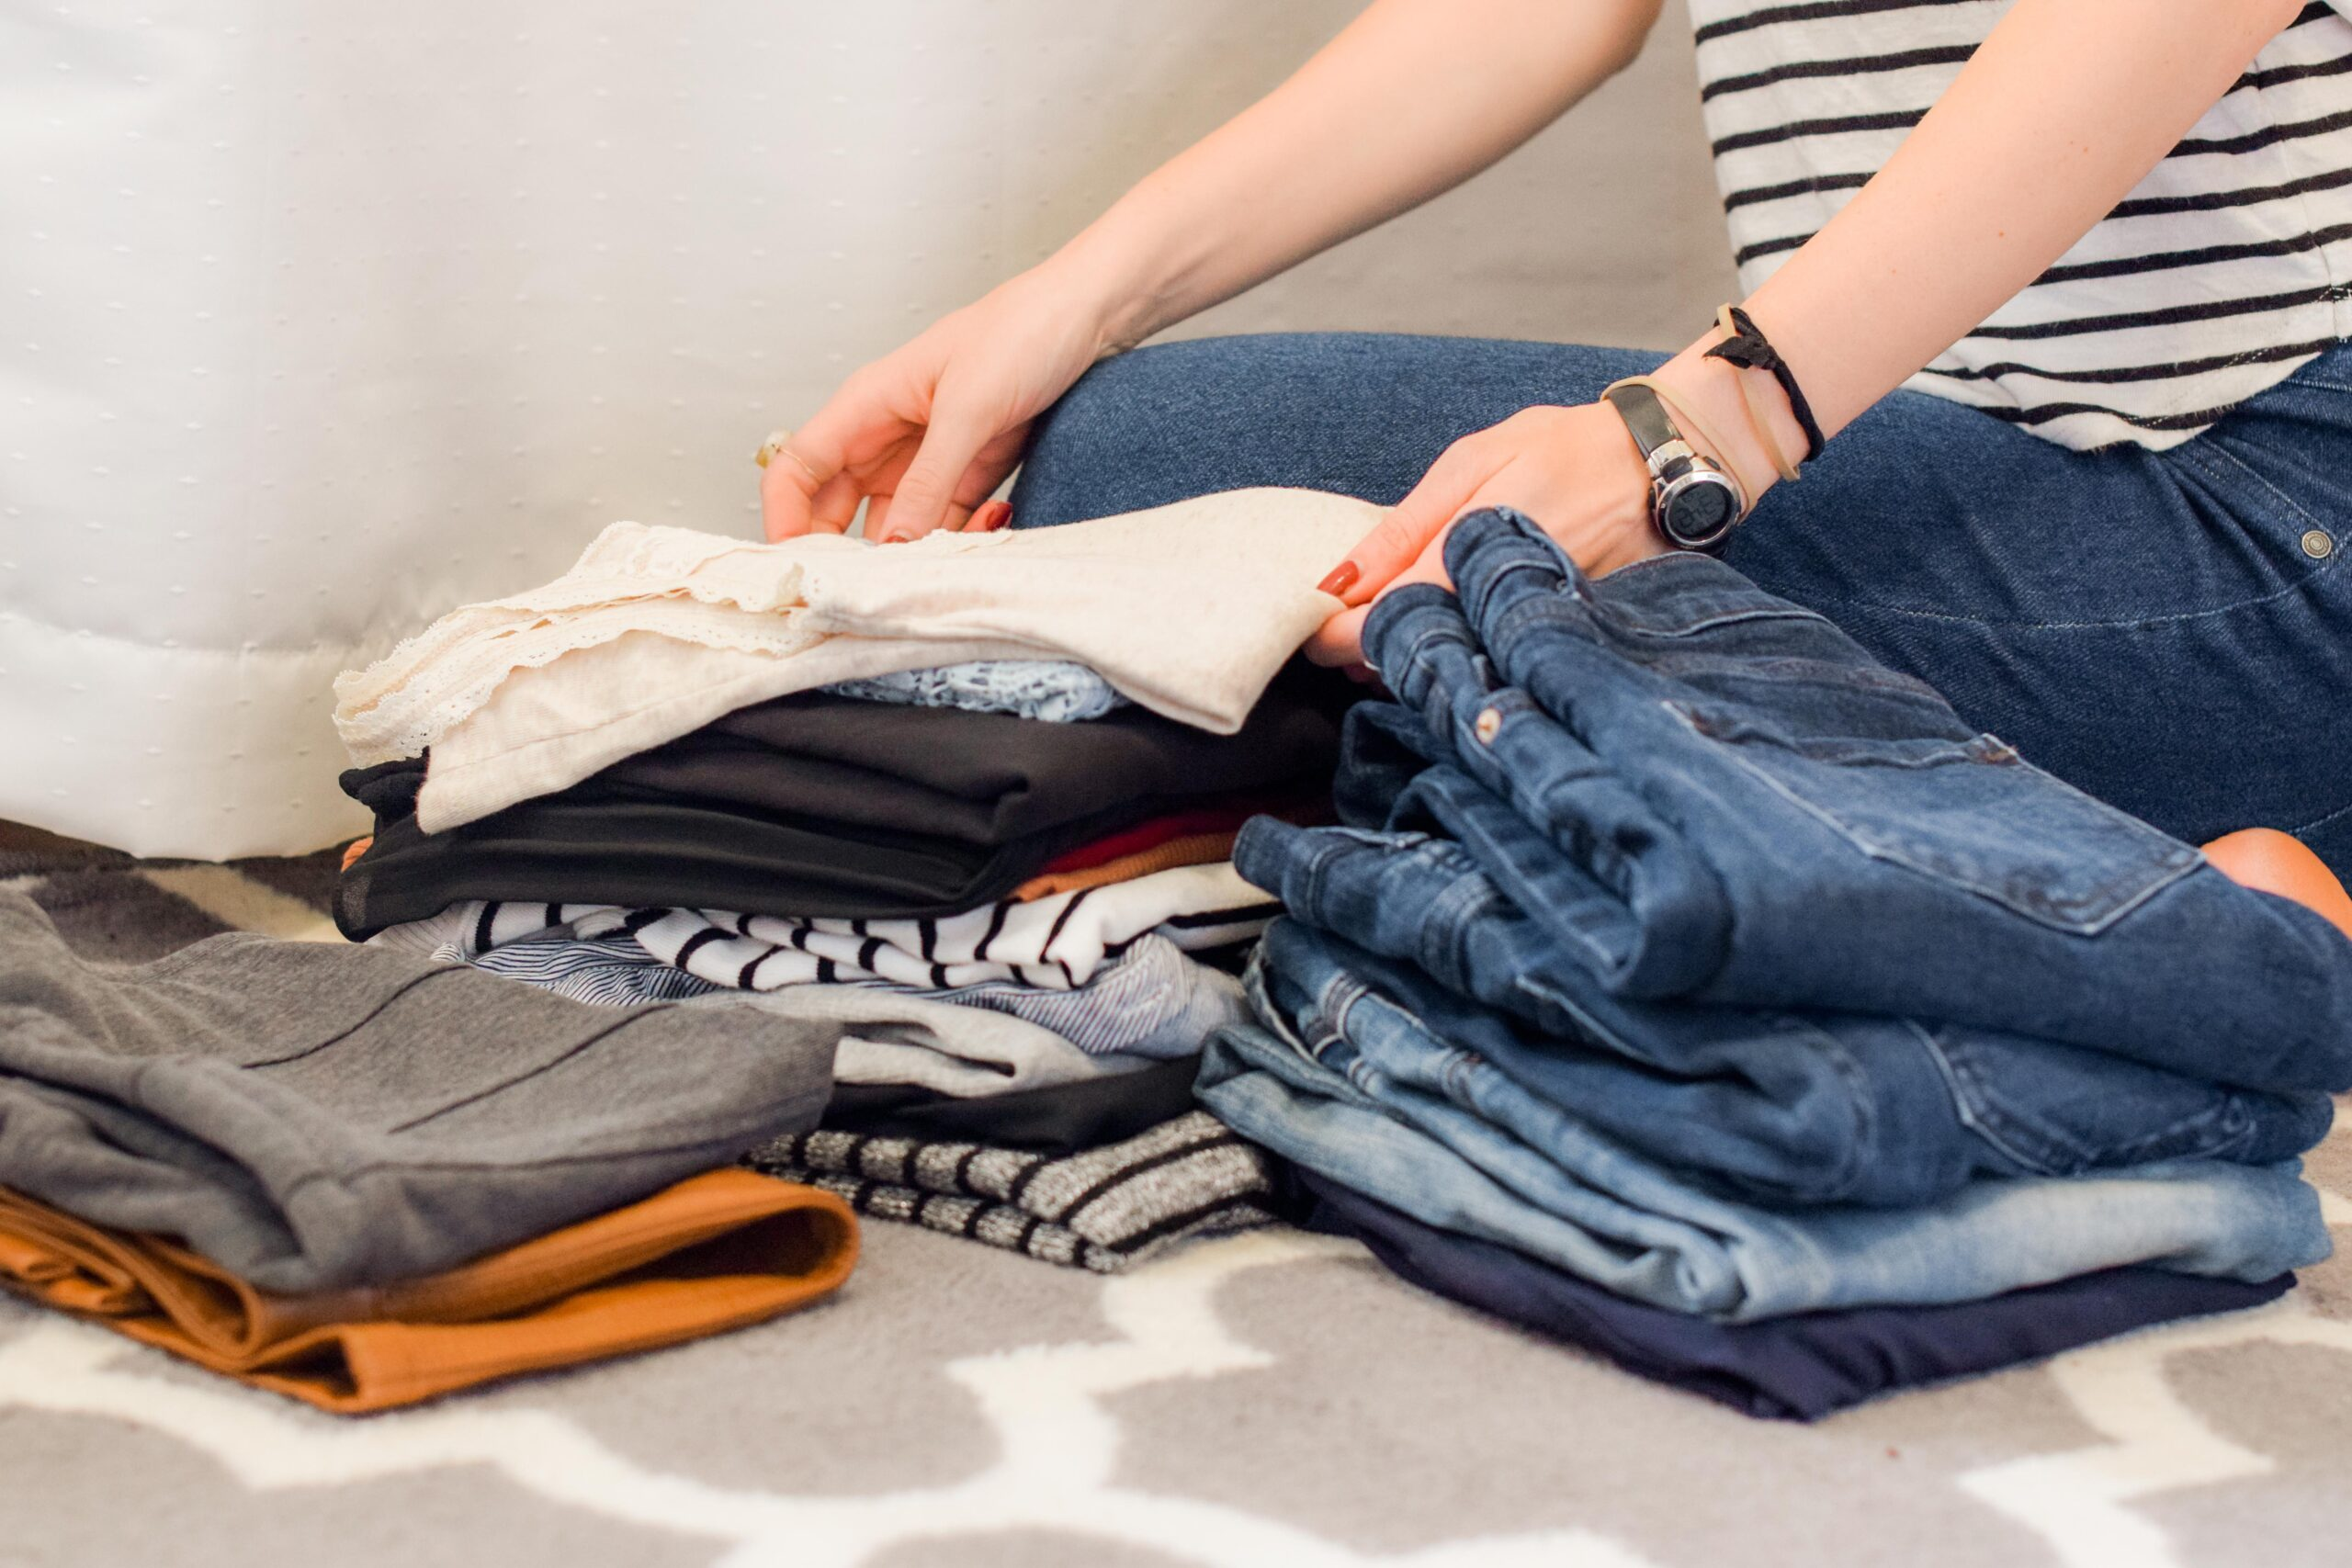 You could make up to $500 a week doing someone else's laundry at home-min (1)